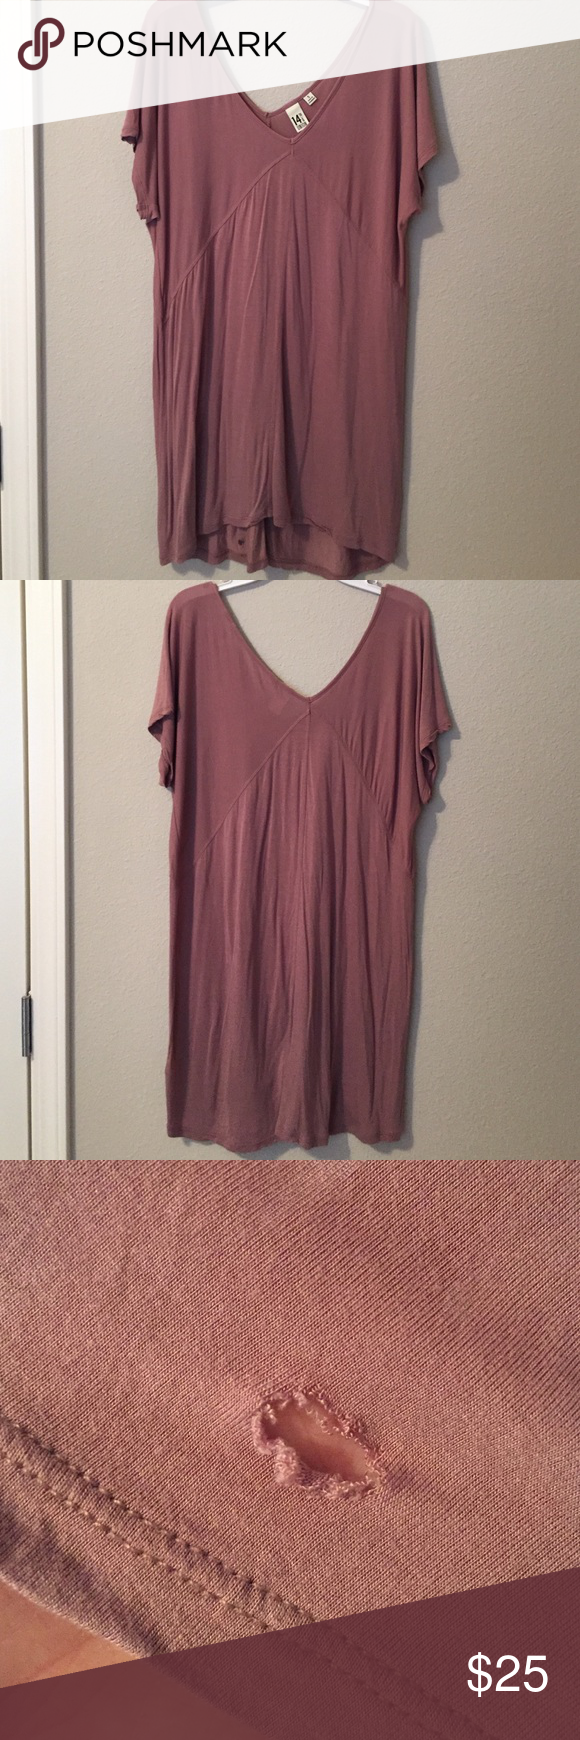 14th and Union Dress or Over-Sized Shirt Dark rose dress or oversized shirt. Looks great with boots or leggings. Excellent piece to transition into fall with. Small hole in the back of dress (pictured). Nordstrom Tops Tees - Short Sleeve